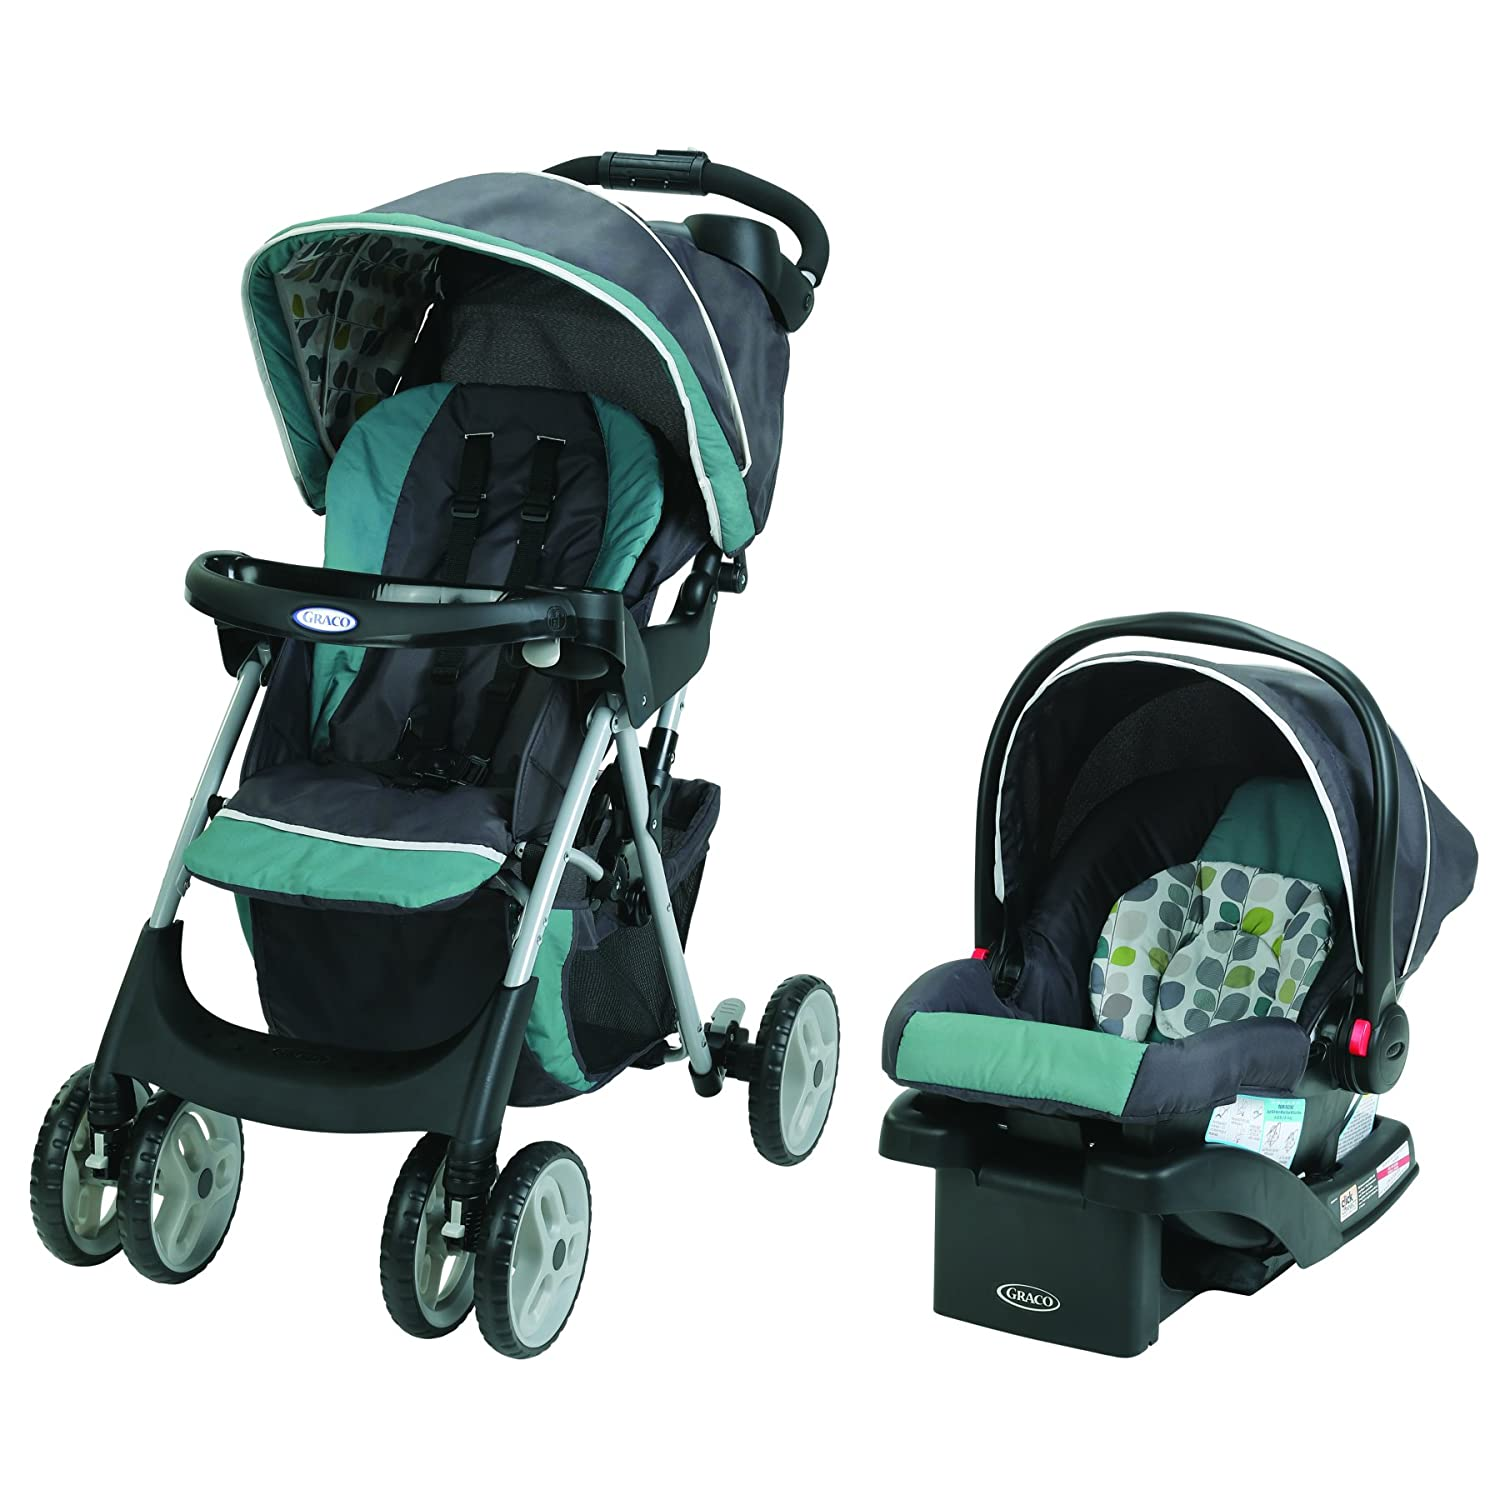 Graco Comfy Cruiser Click Connect Travel System with SnugRide Click Connect 30 - Boden, Grey 1972901